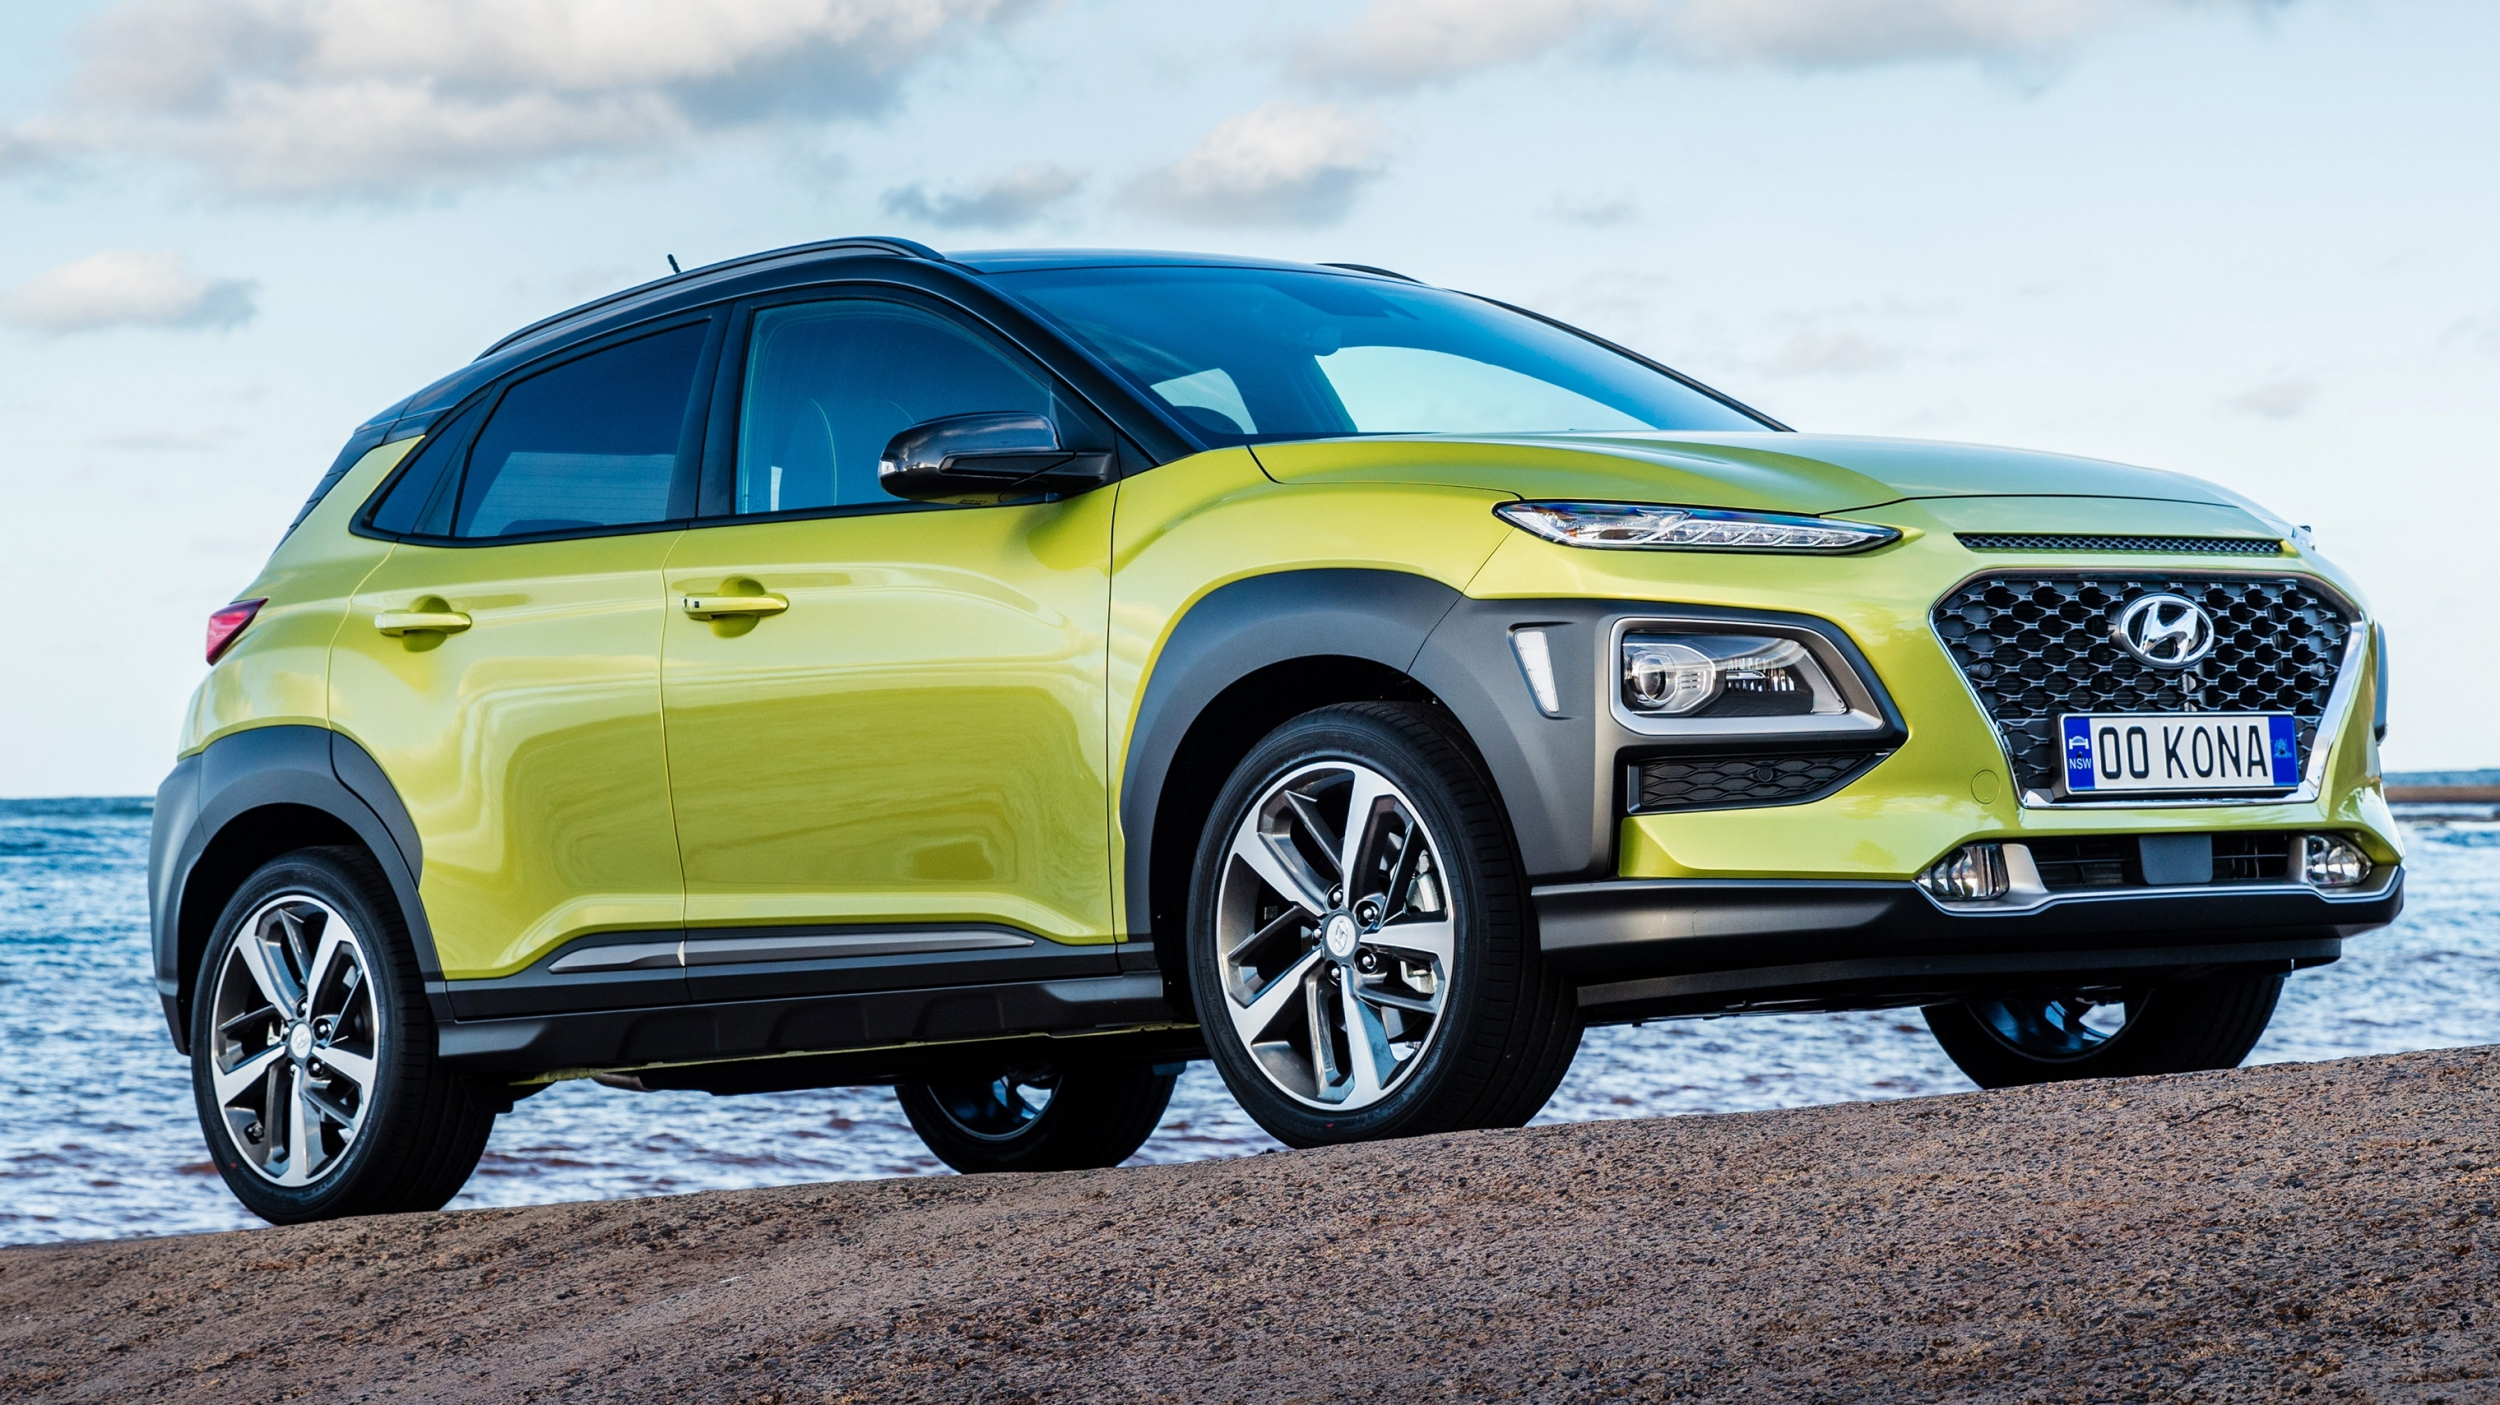 Isuzu >> Review - 2017 Hyundai Kona - Review